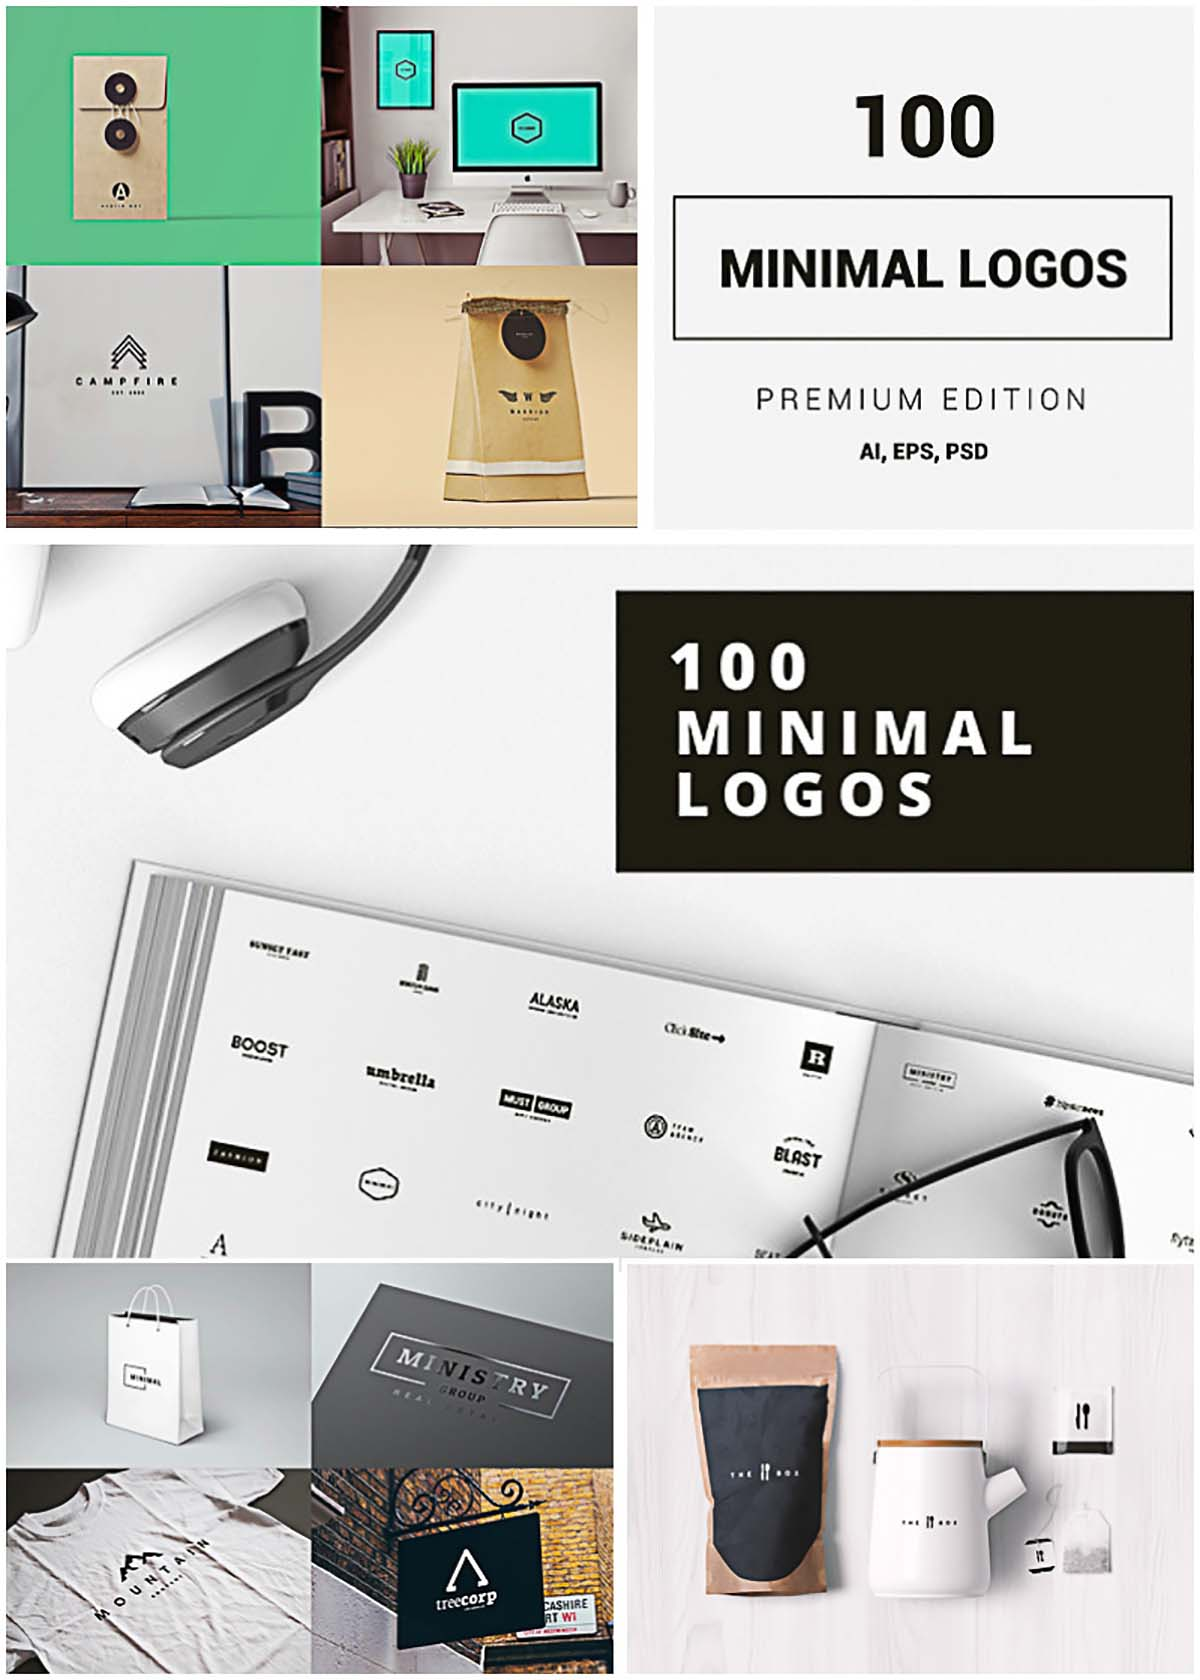 Minimal logos for business free vector